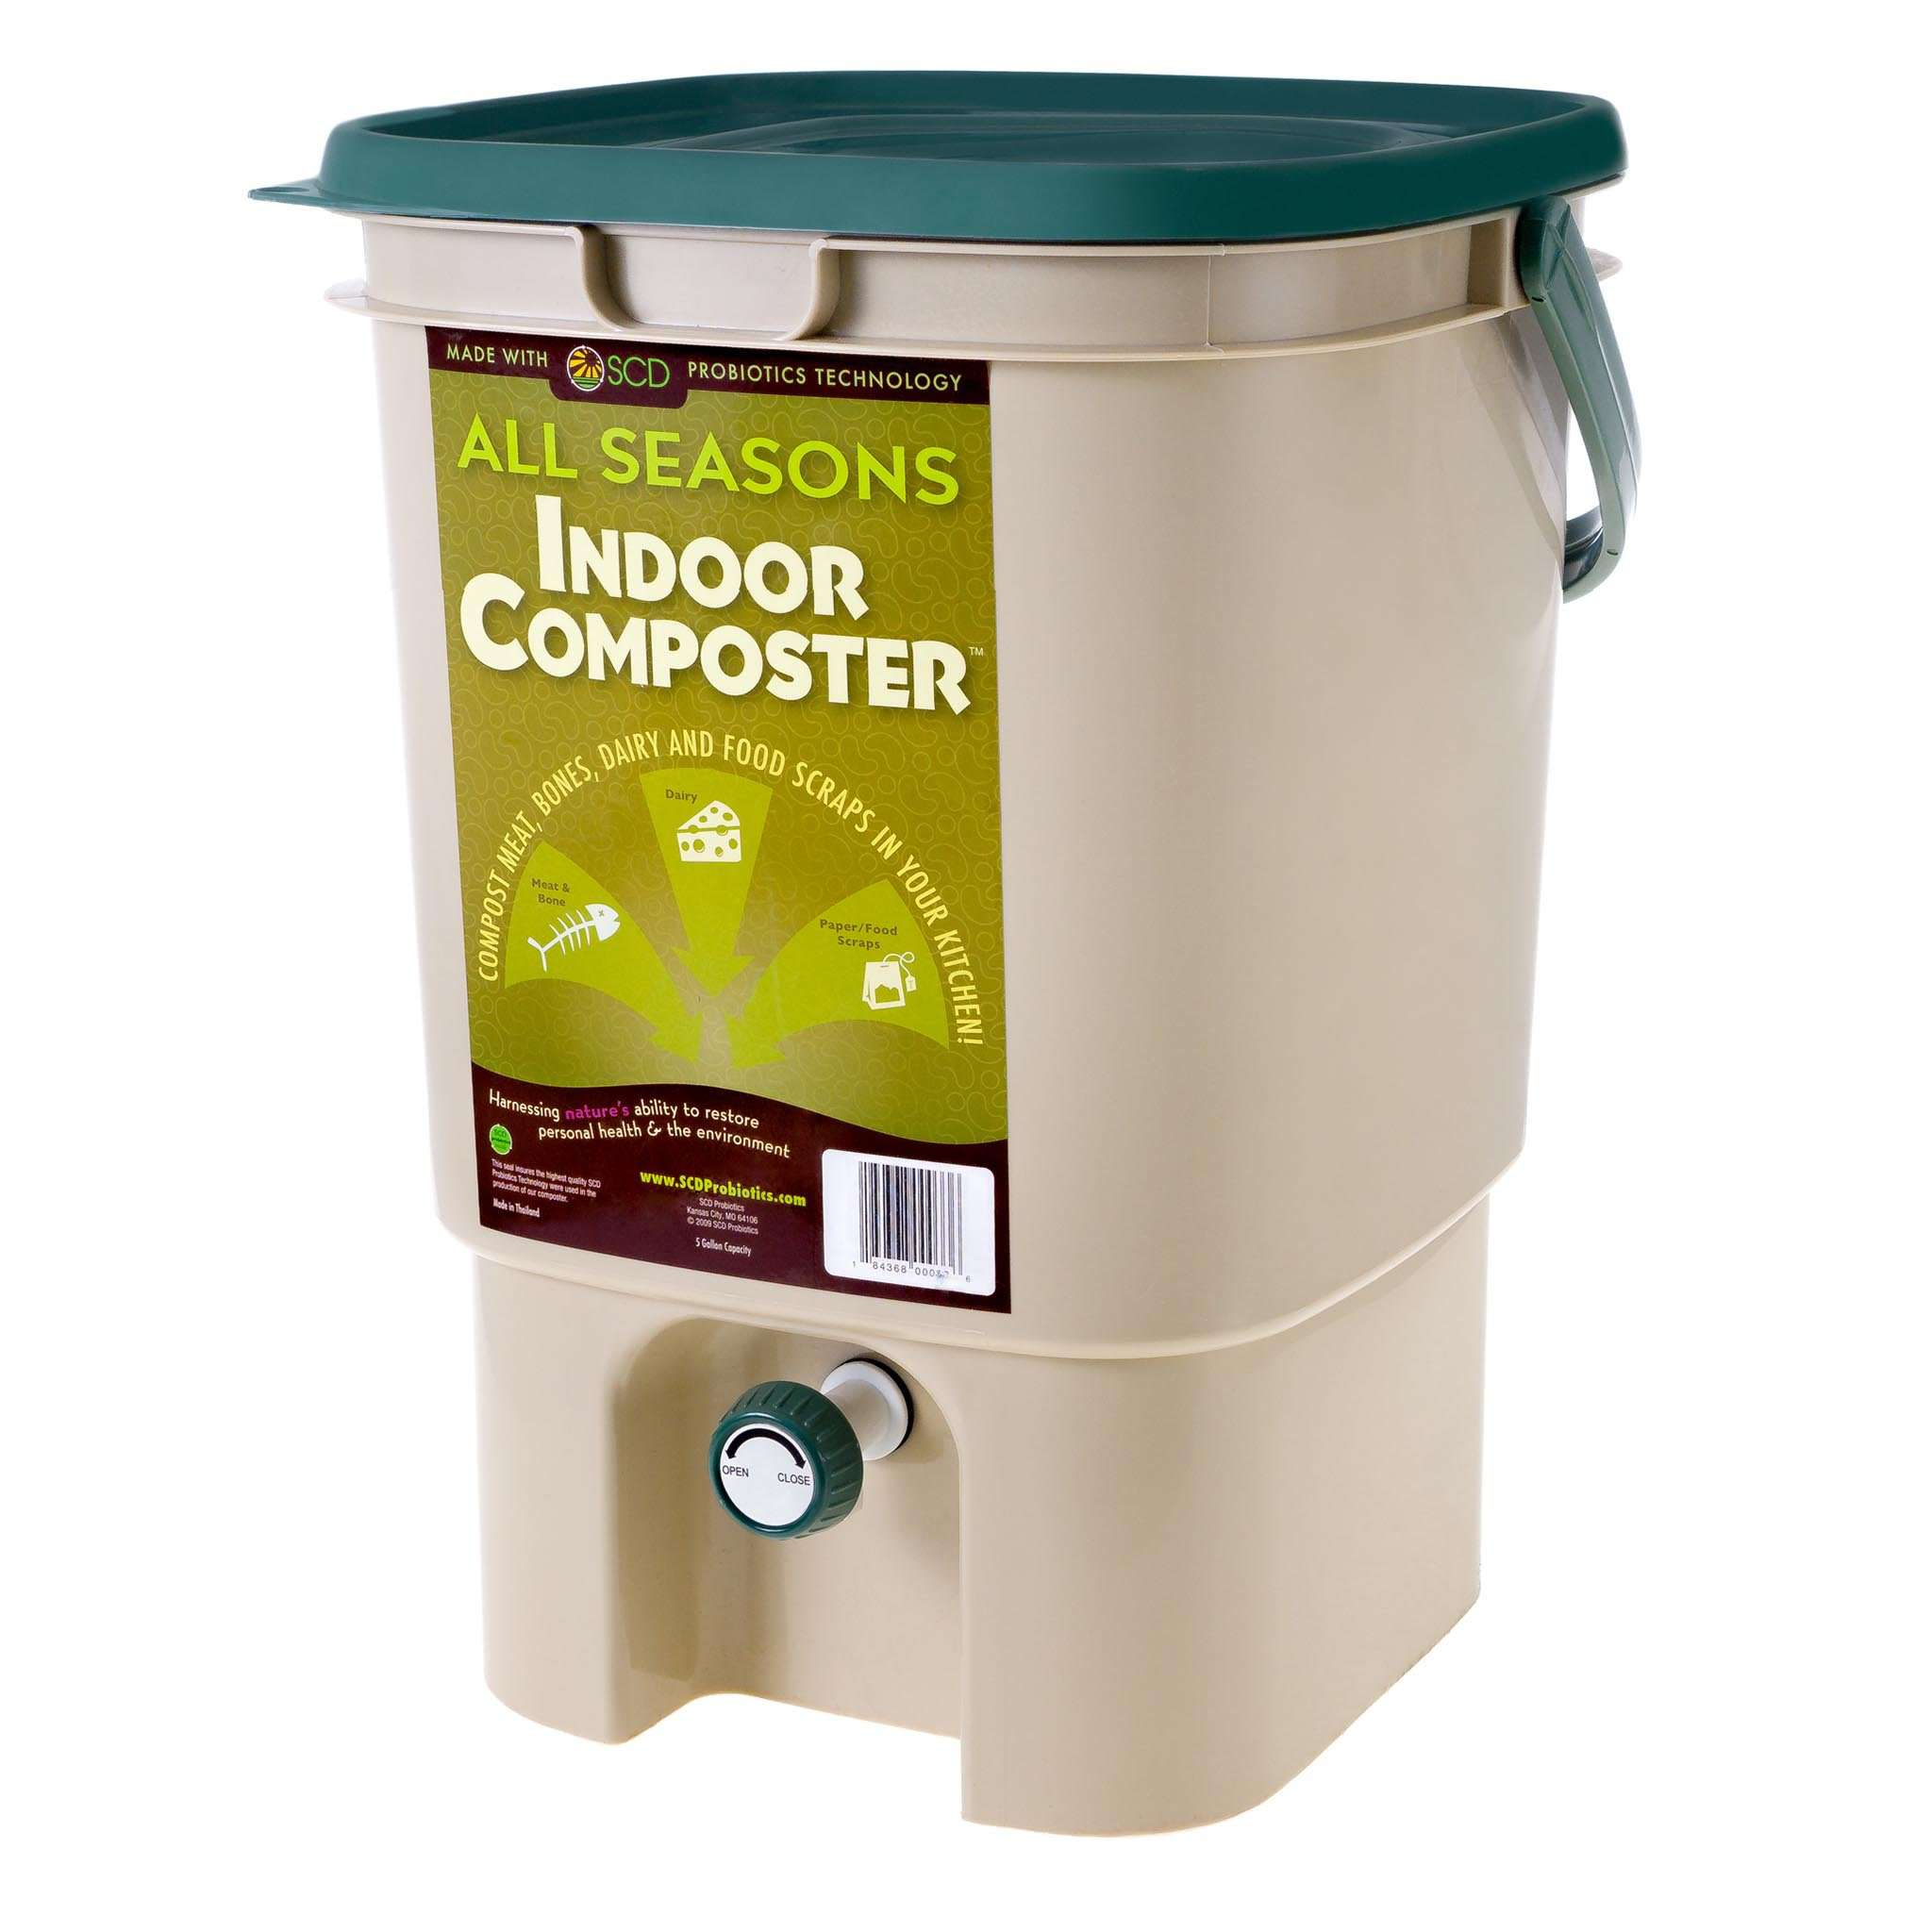 All Seasons Composter